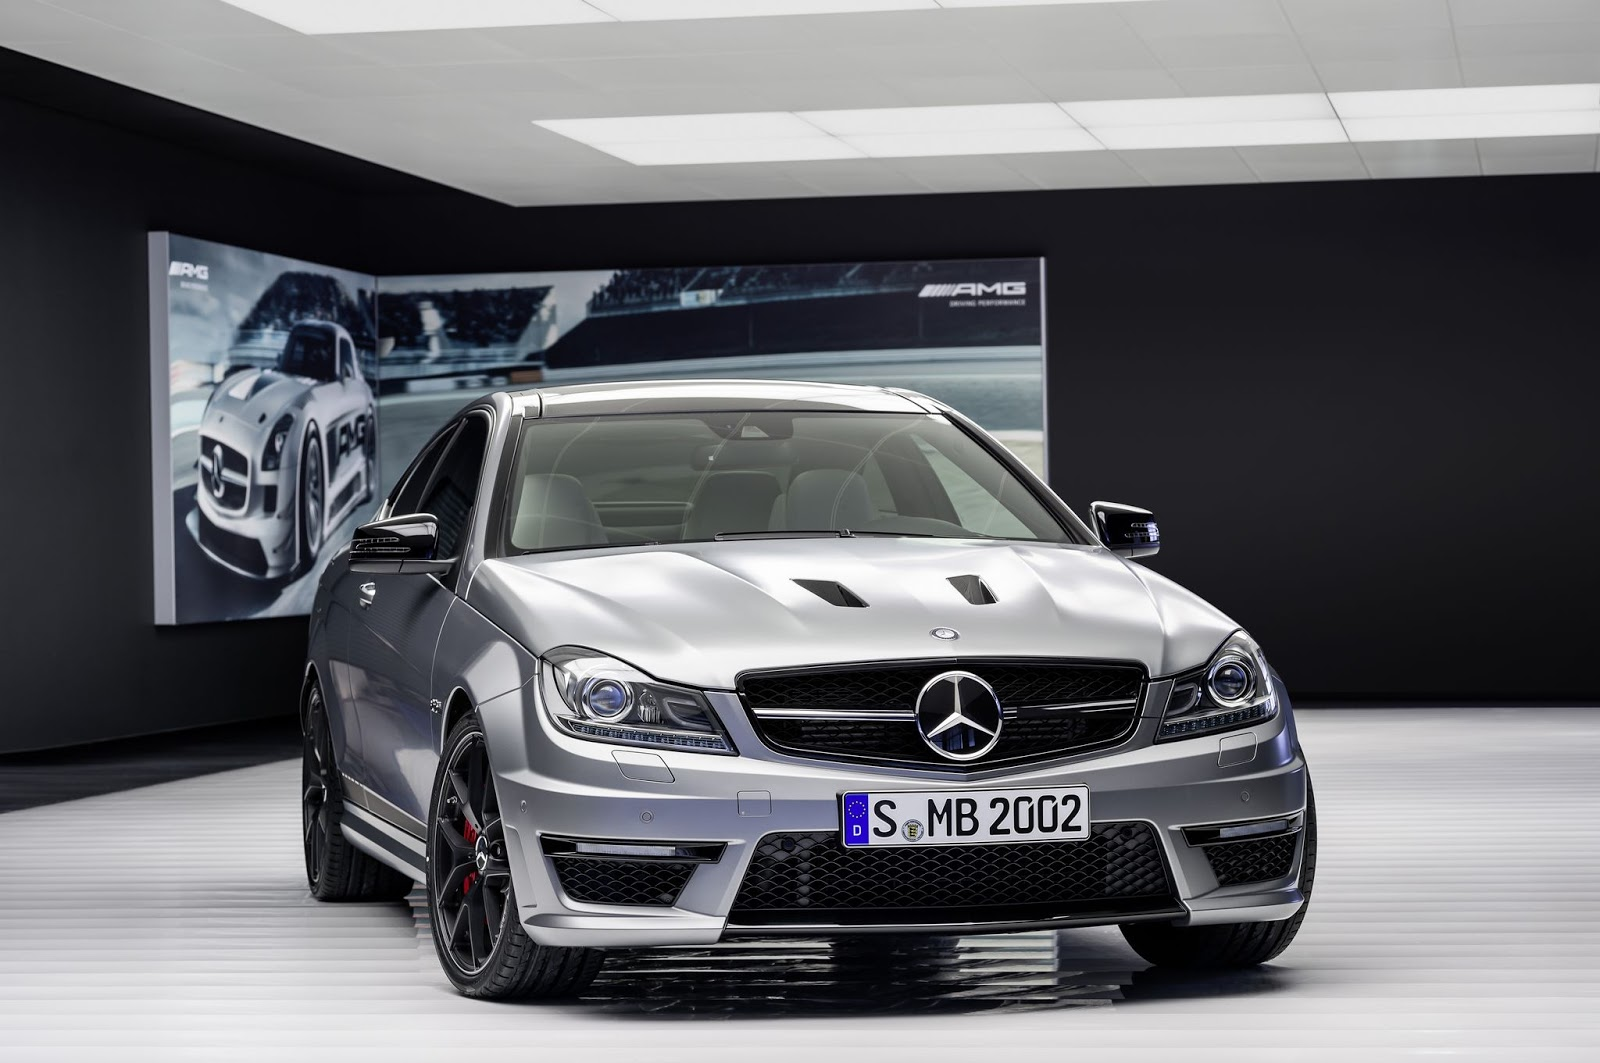 2014 MERCEDES-BENZ C63 AMG EDITION 507, 2014 MERCEDES-BENZ C63 AMG EDITION 507 SPECS, 2014 MERCEDES-BENZ C63 AMG EDITION 507 TOP SPEED, 2014 MERCEDES-BENZ C63 AMG EDITION 507 FEATURES, 2014 MERCEDES-BENZ C63 AMG EDITION 507 PRICE,